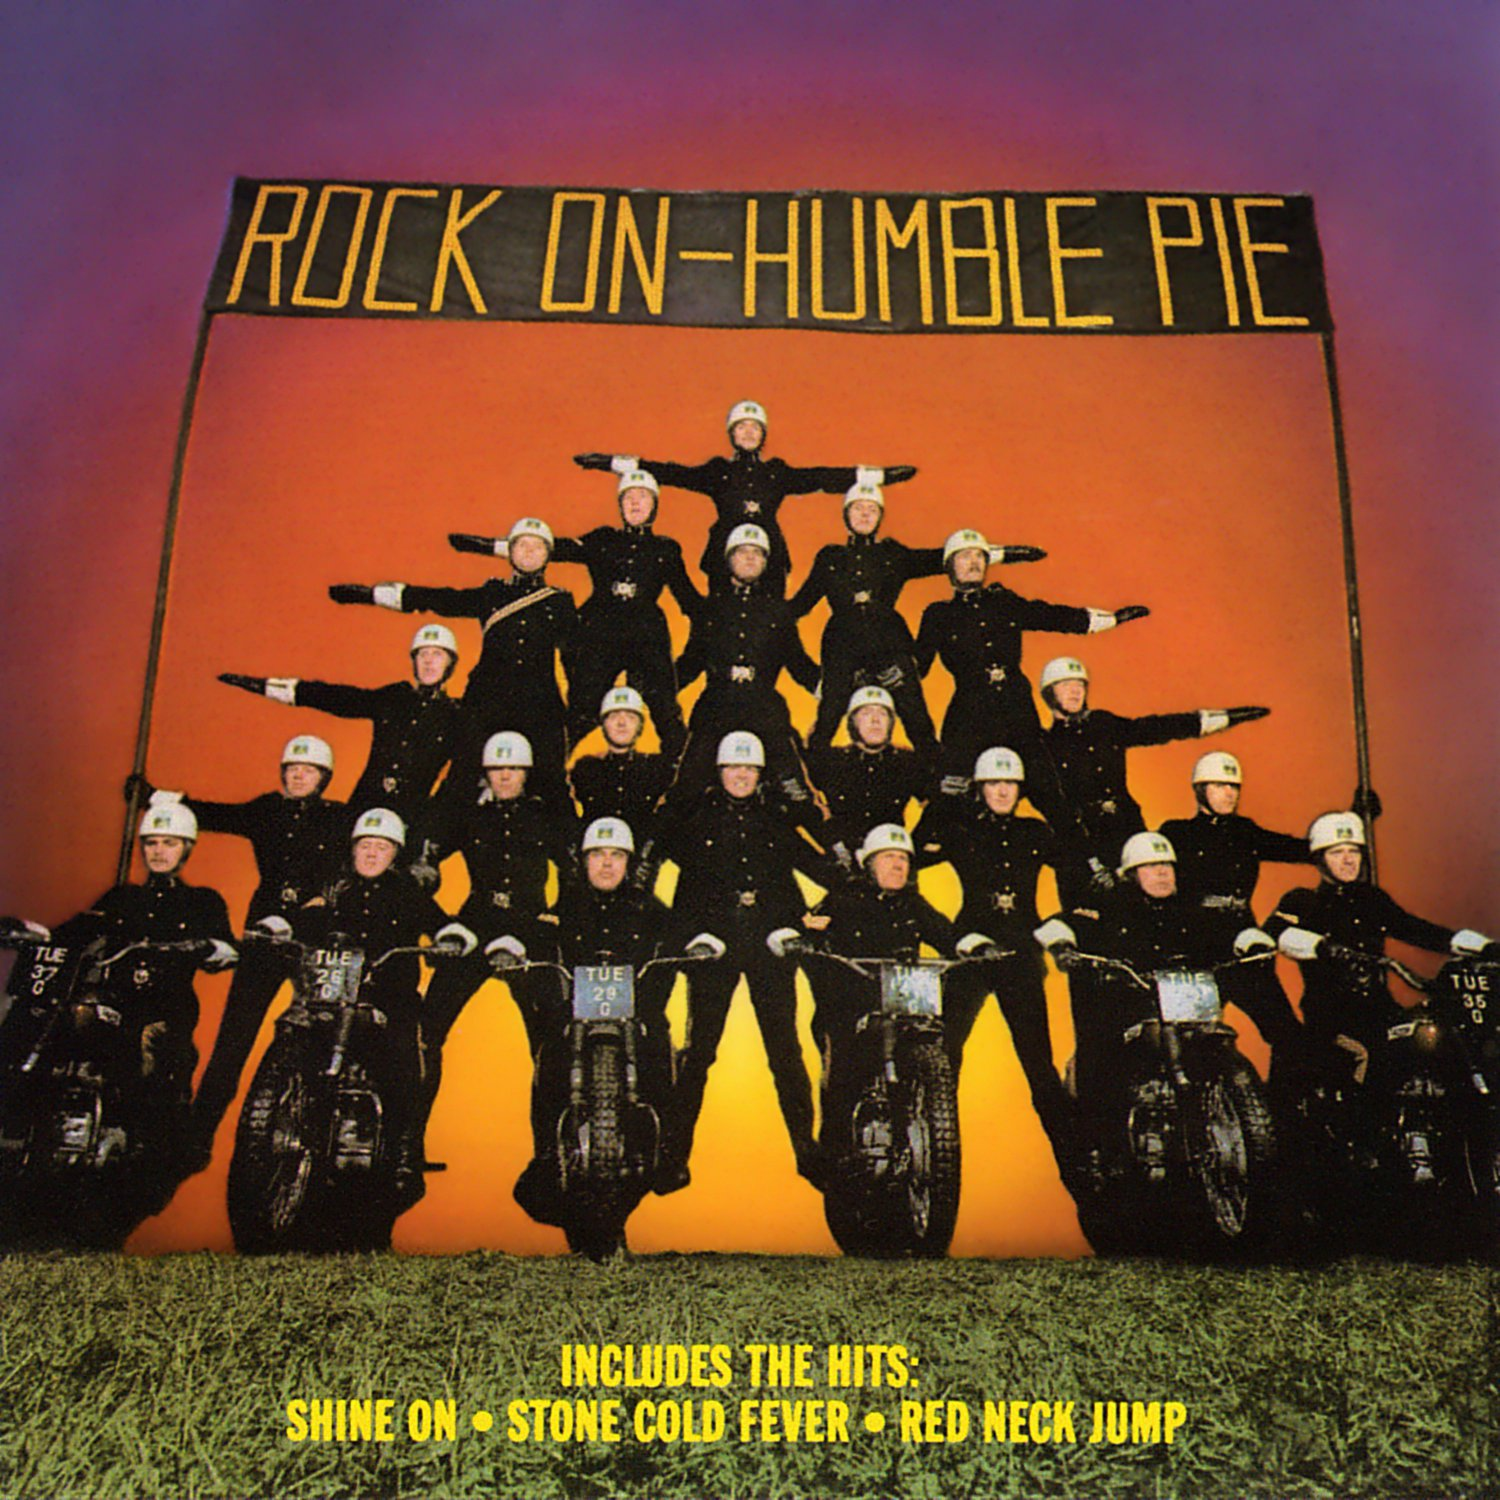 HUMBLE PIE Rock On BANNER Huge 4X4 Ft Fabric Poster Tapestry Flag Print album cover art